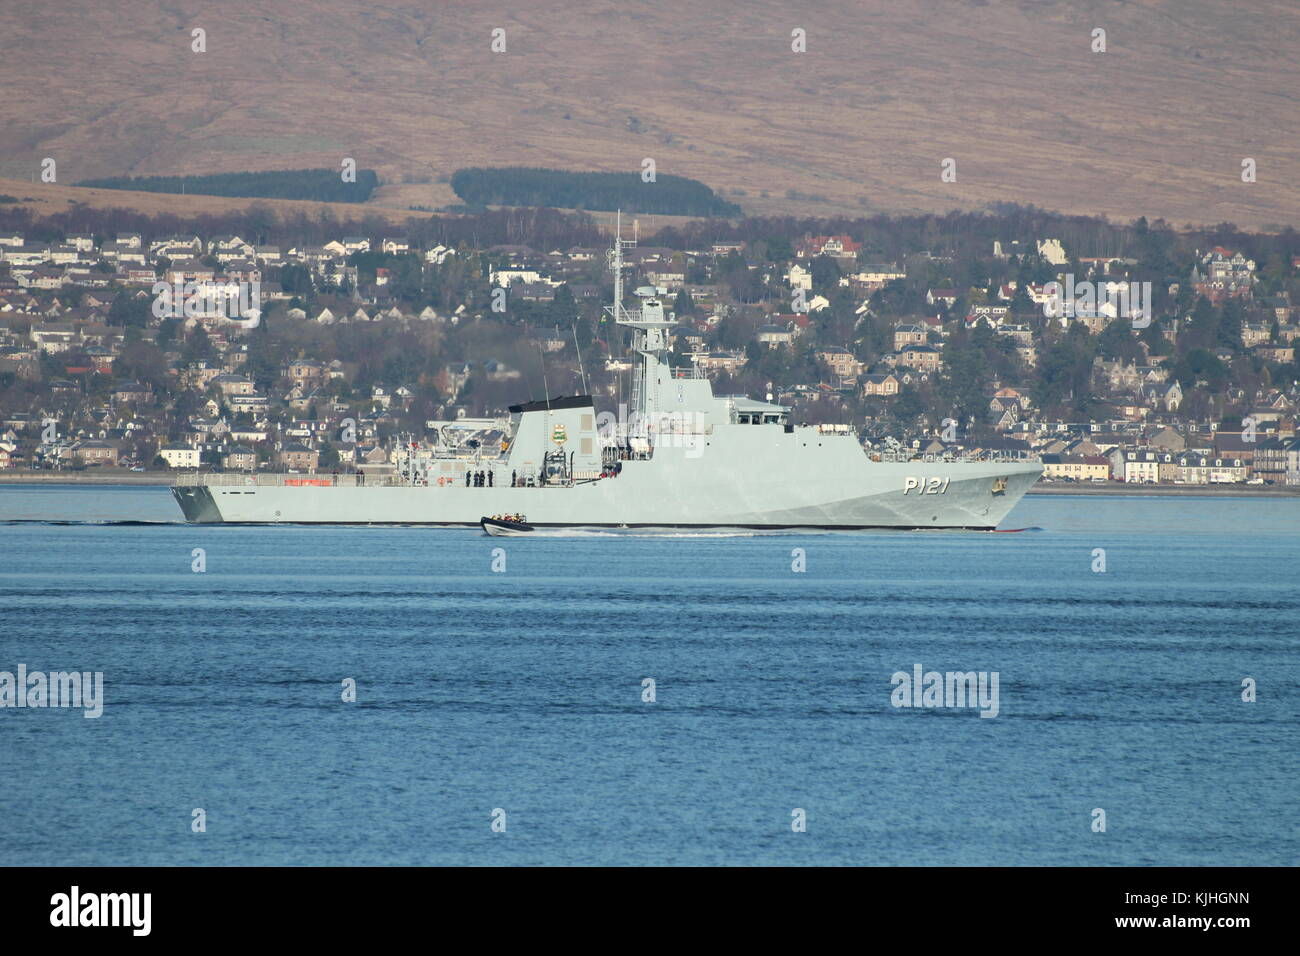 NaPaOc Apa (P121), an Amazonas-class corvette of the Brazilian Navy, off Greenock on the Firth of Clyde. - Stock Image